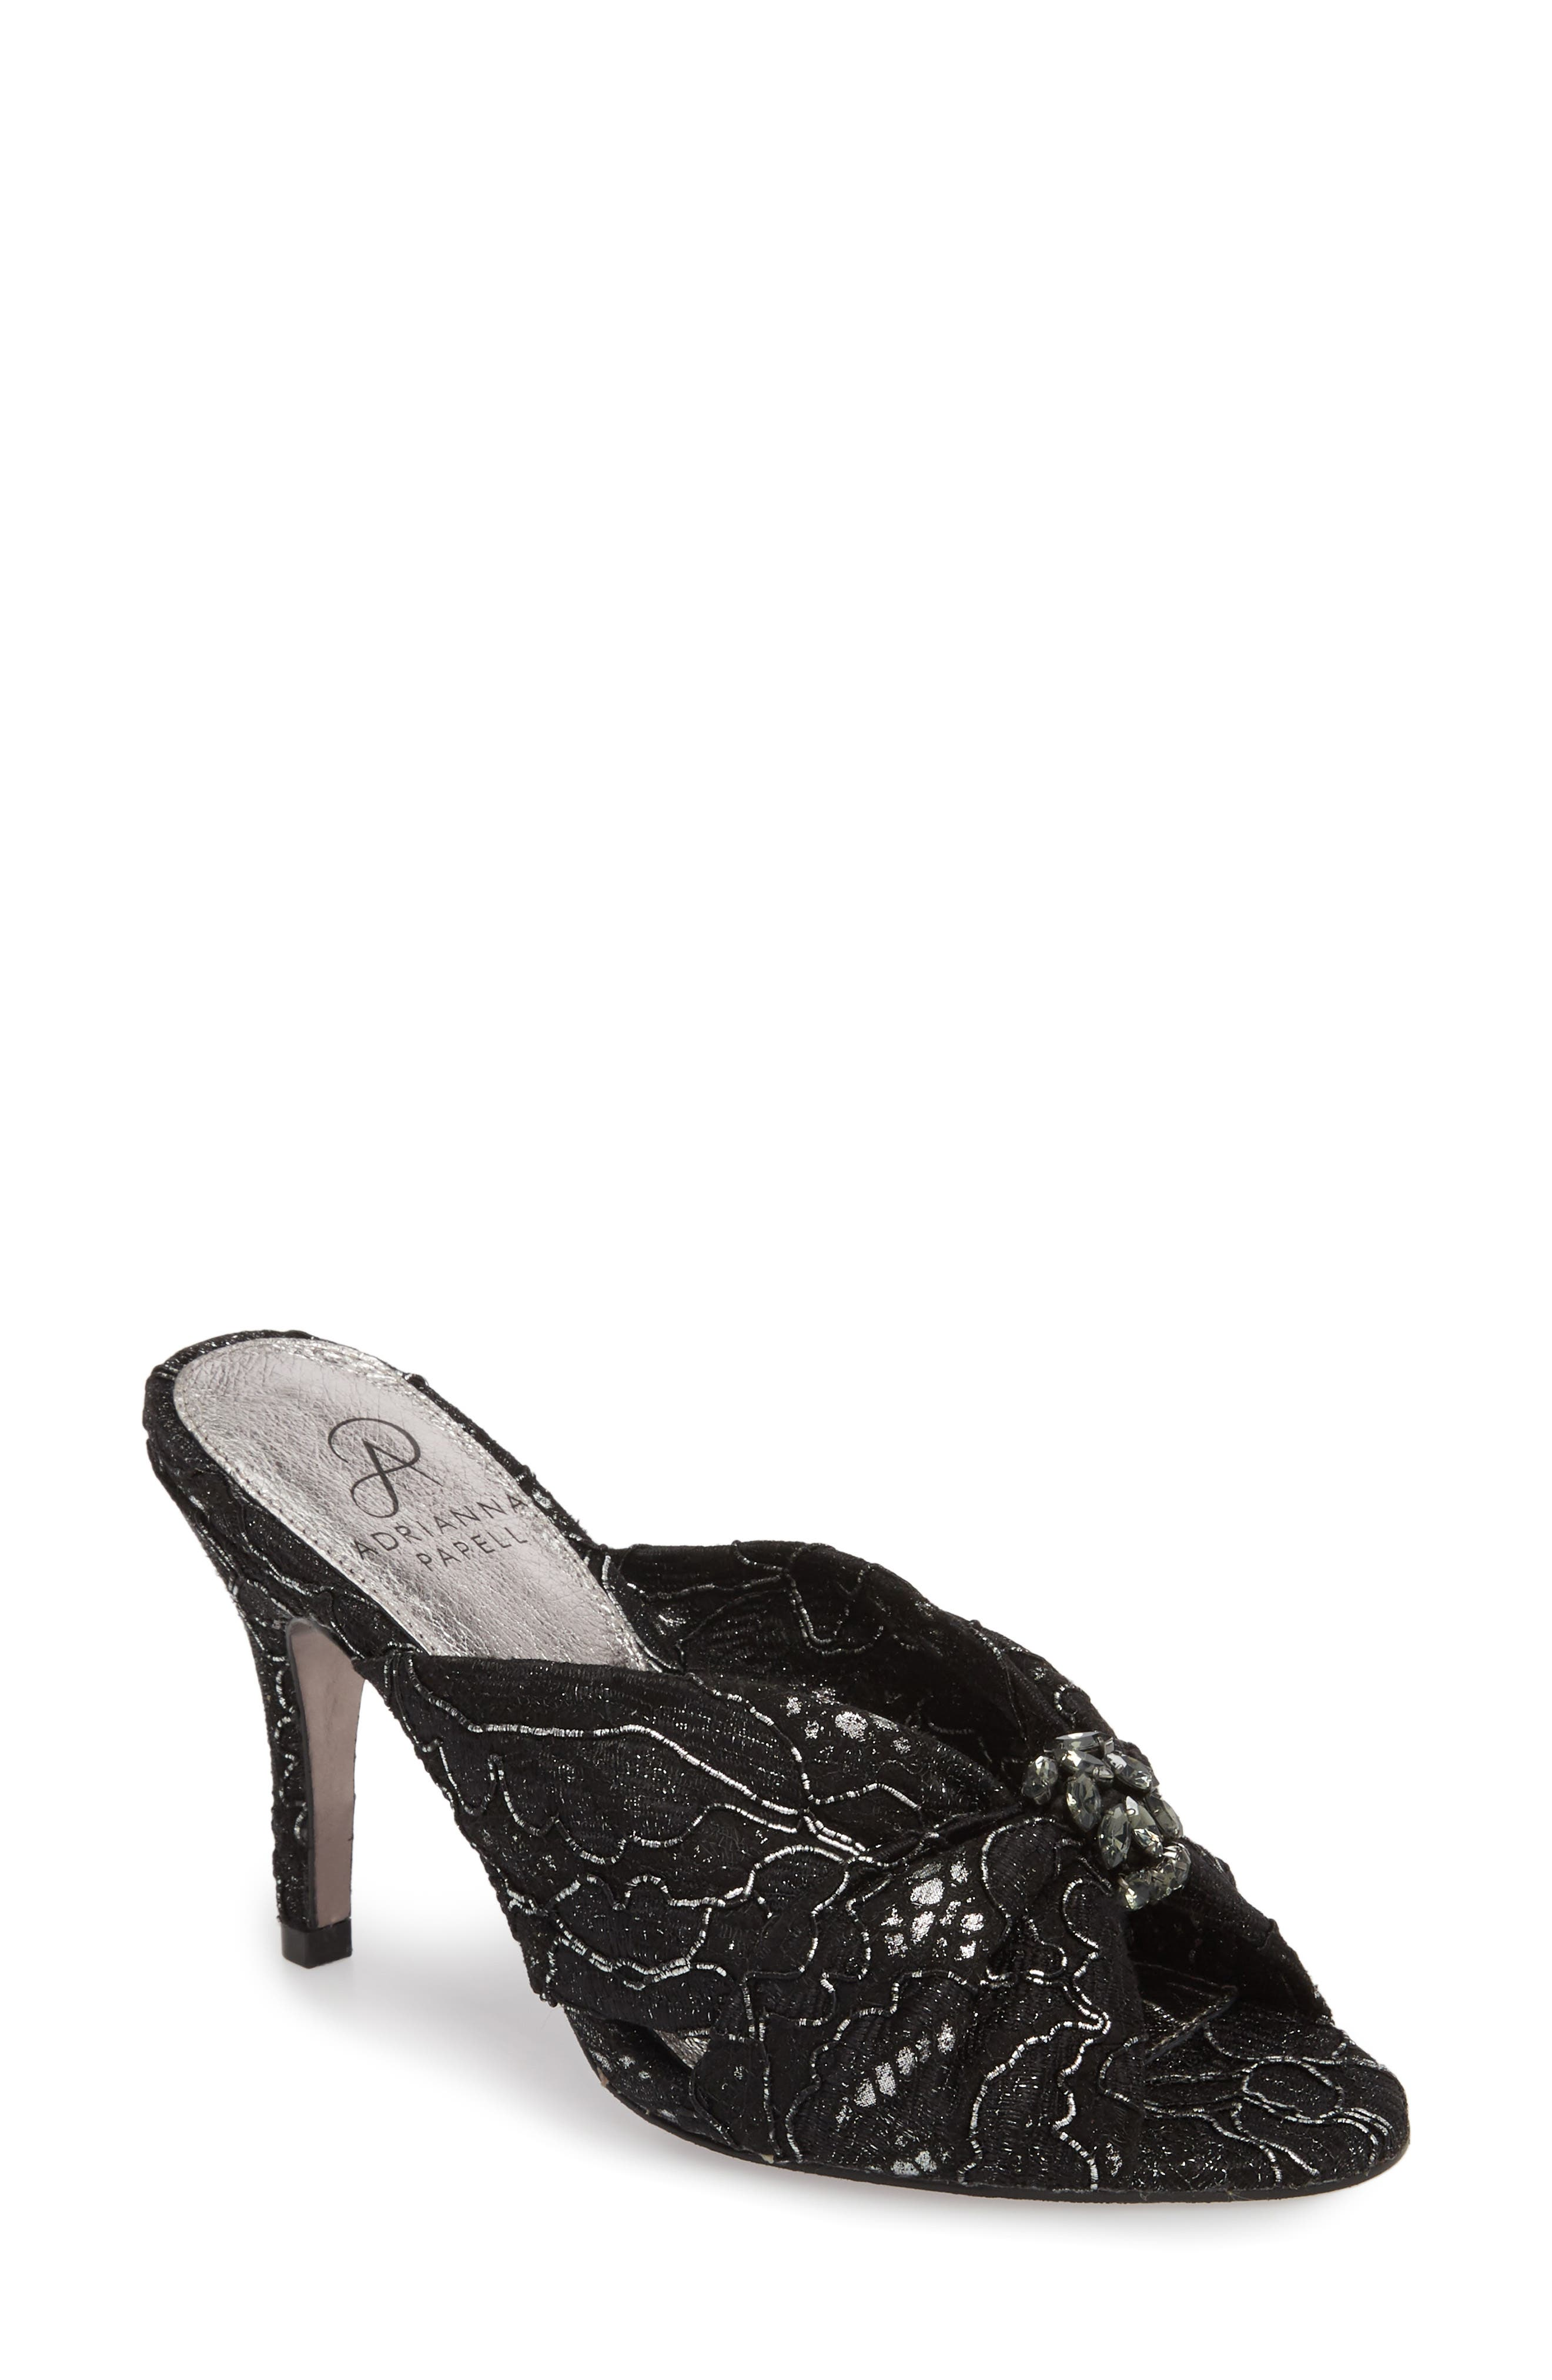 Flo Sandal,                         Main,                         color, PEWTER LACE FABRIC